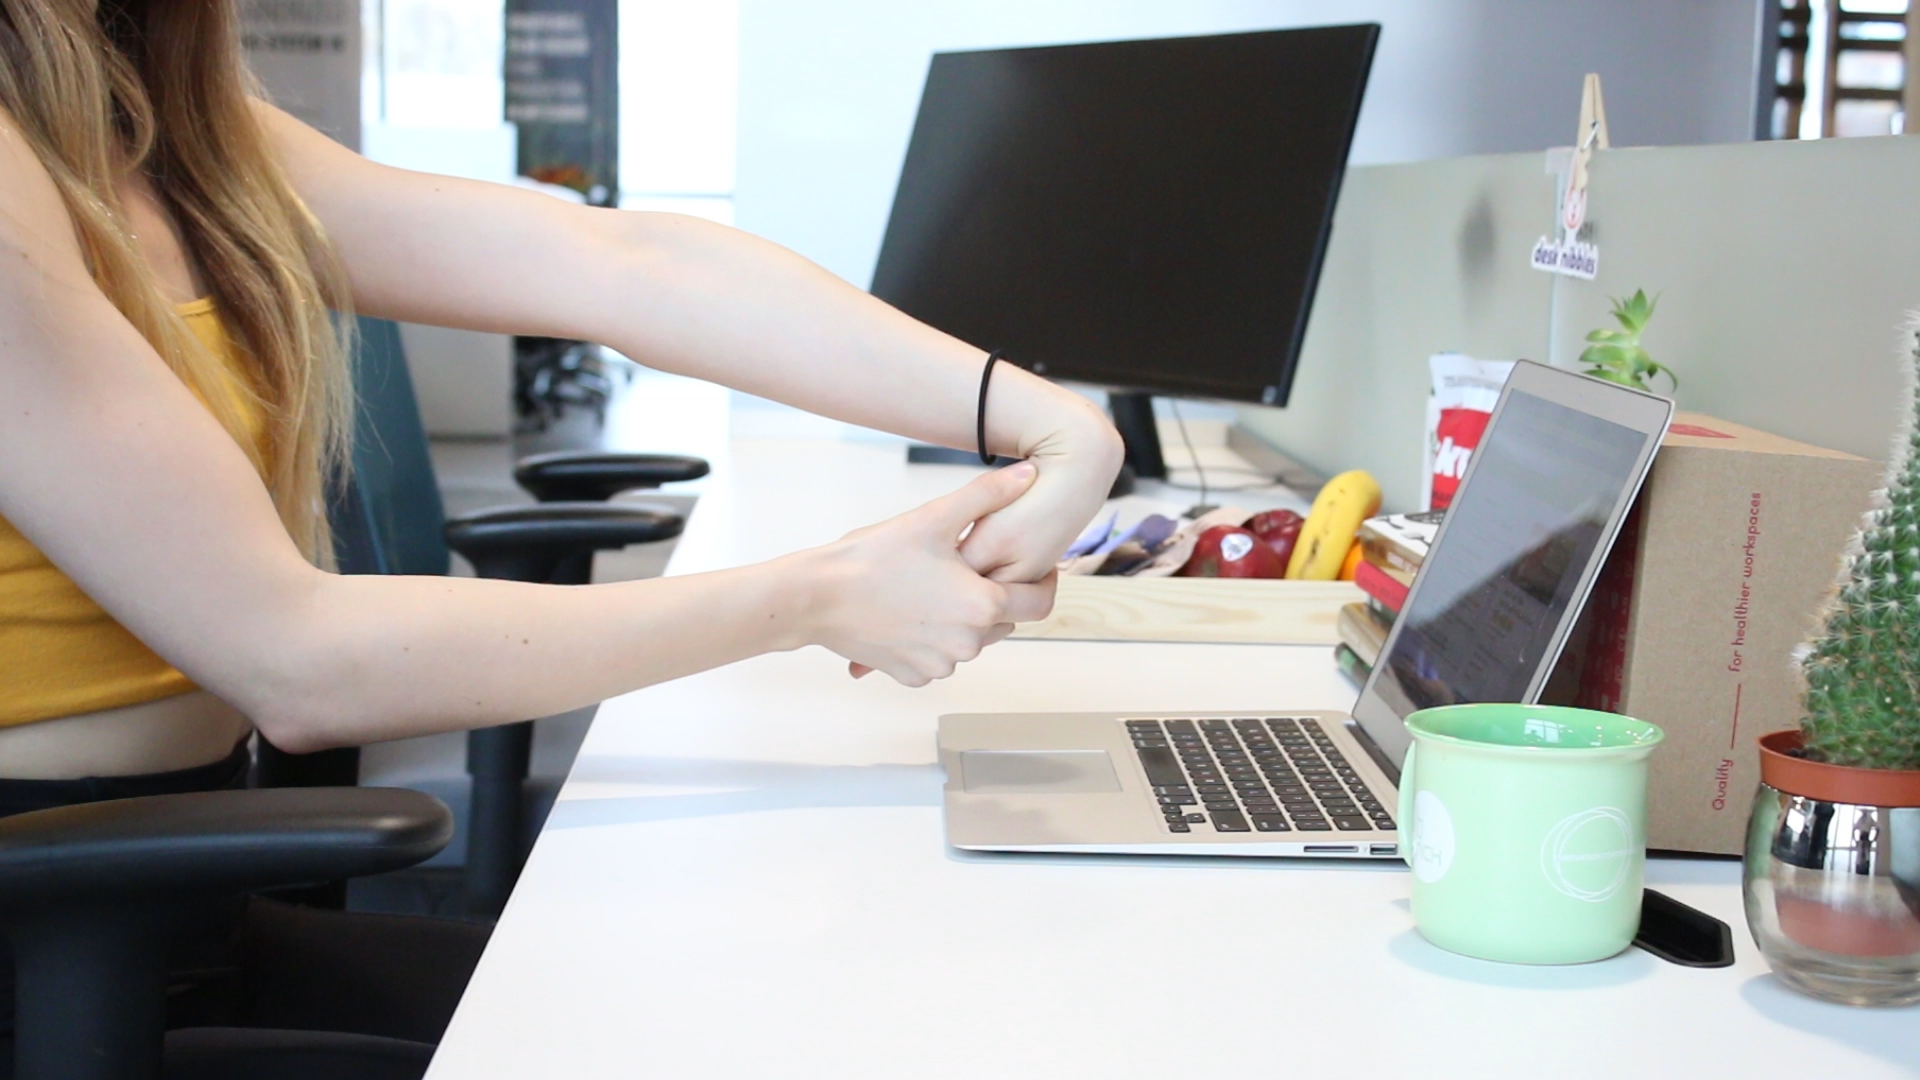 Reduce your risk of carpal tunnel with this wrist stretch